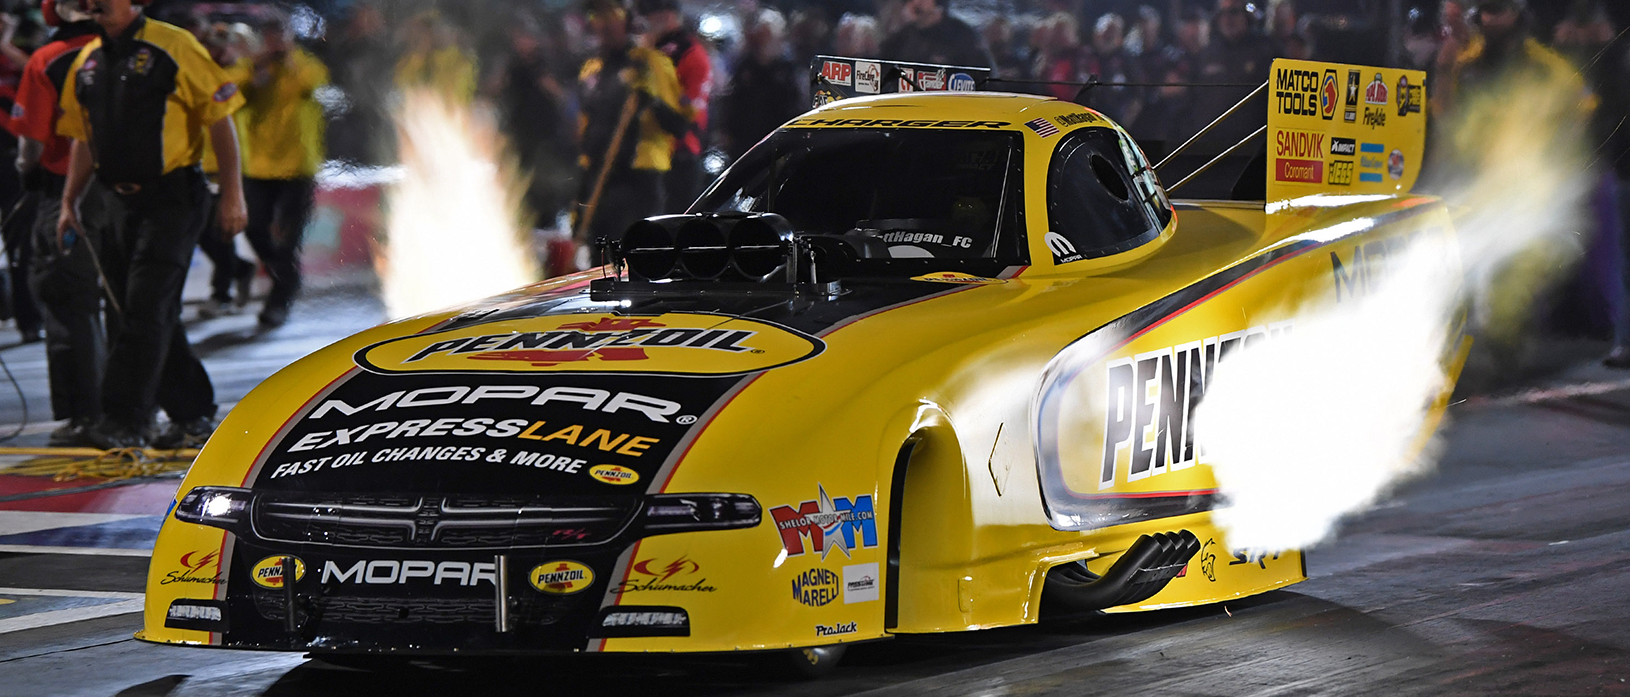 Matt Hagan racing down the track in his Dodge Charger SRT Hellcat Funny Car